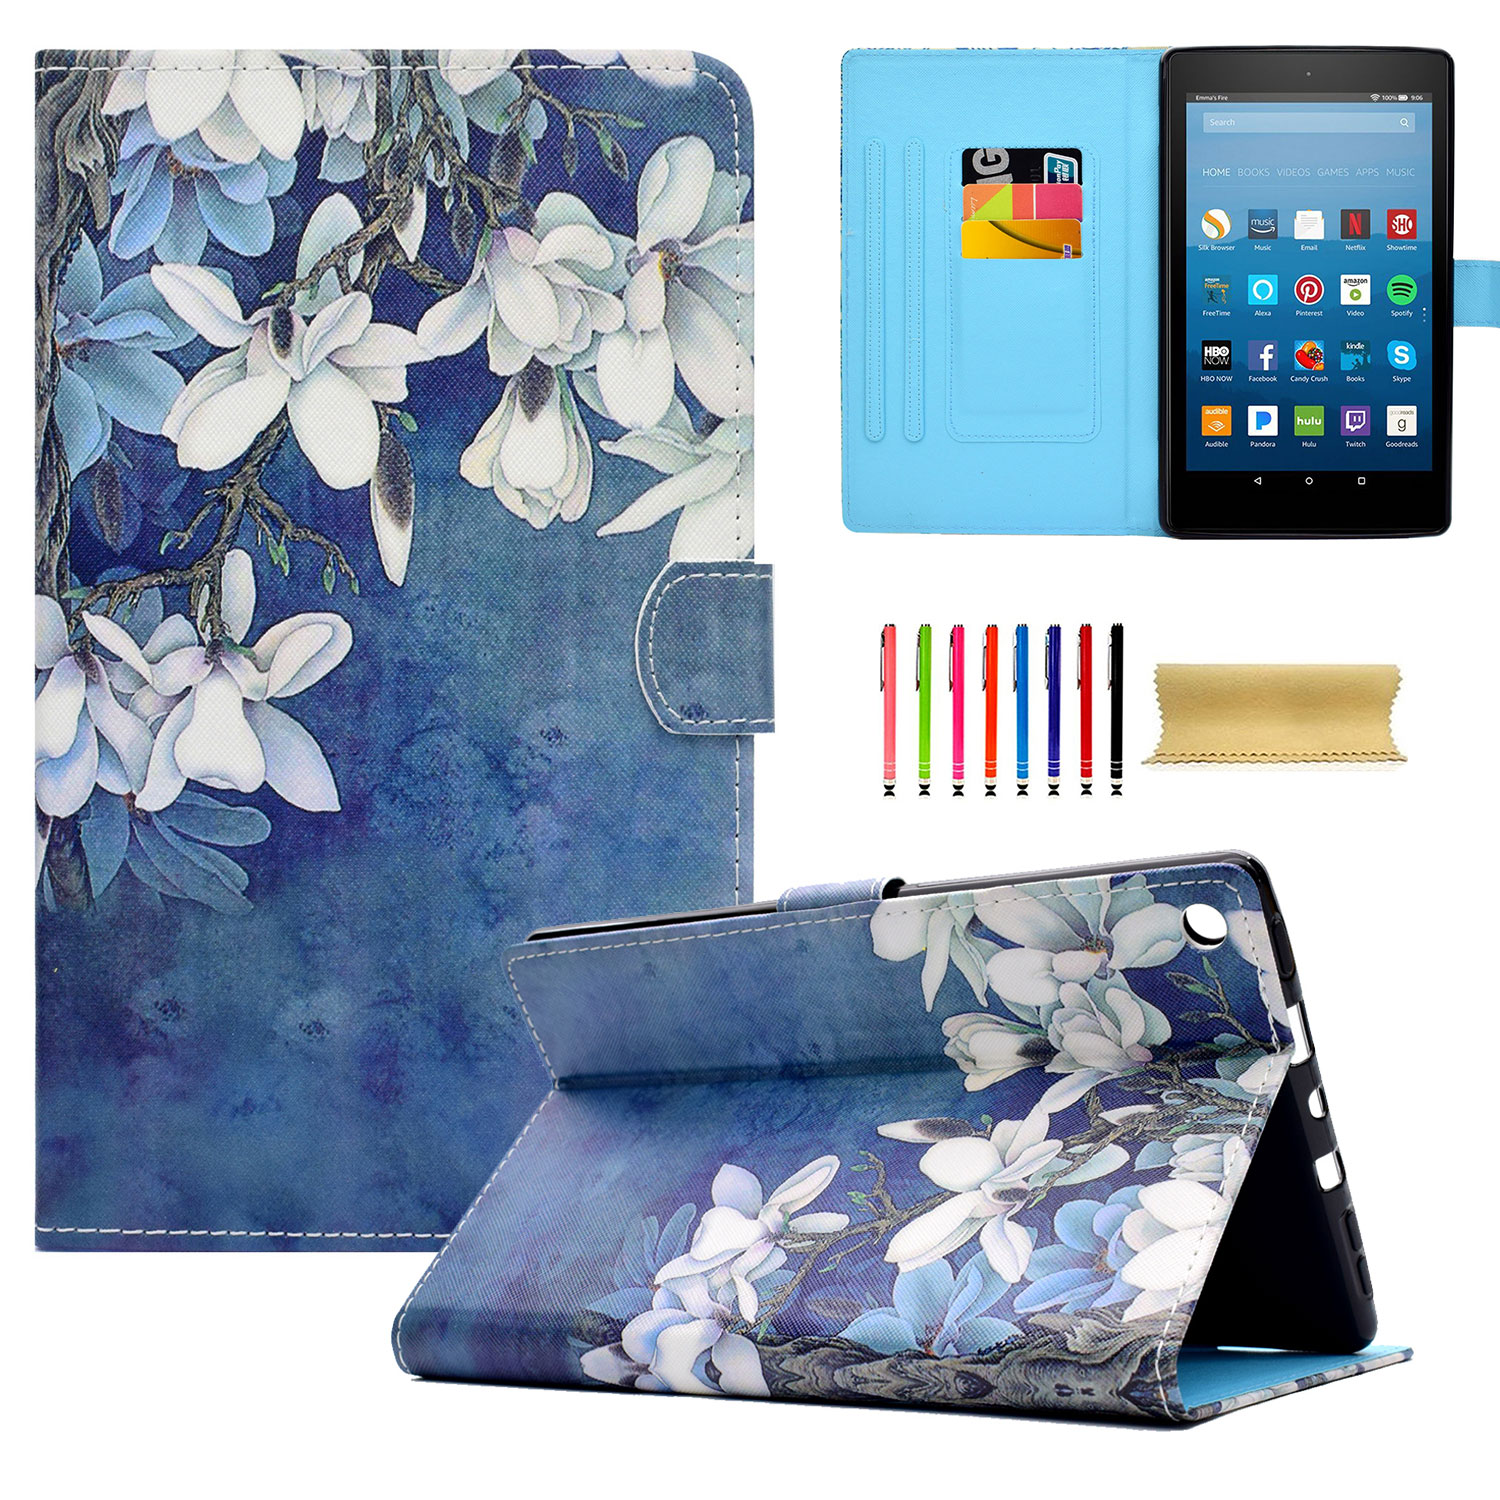 """Goodest Case for All-New Fire HD 8 2018 / Fire HD 8 2017/ Fire HD 8 2016/ Fire HD 8 2015 (8th/7th/6th/5th Gen)- Smart Stand Cover with Auto Wake / Sleep for Amazon Fire HD 8"""" Tablet, White Magnolias"""